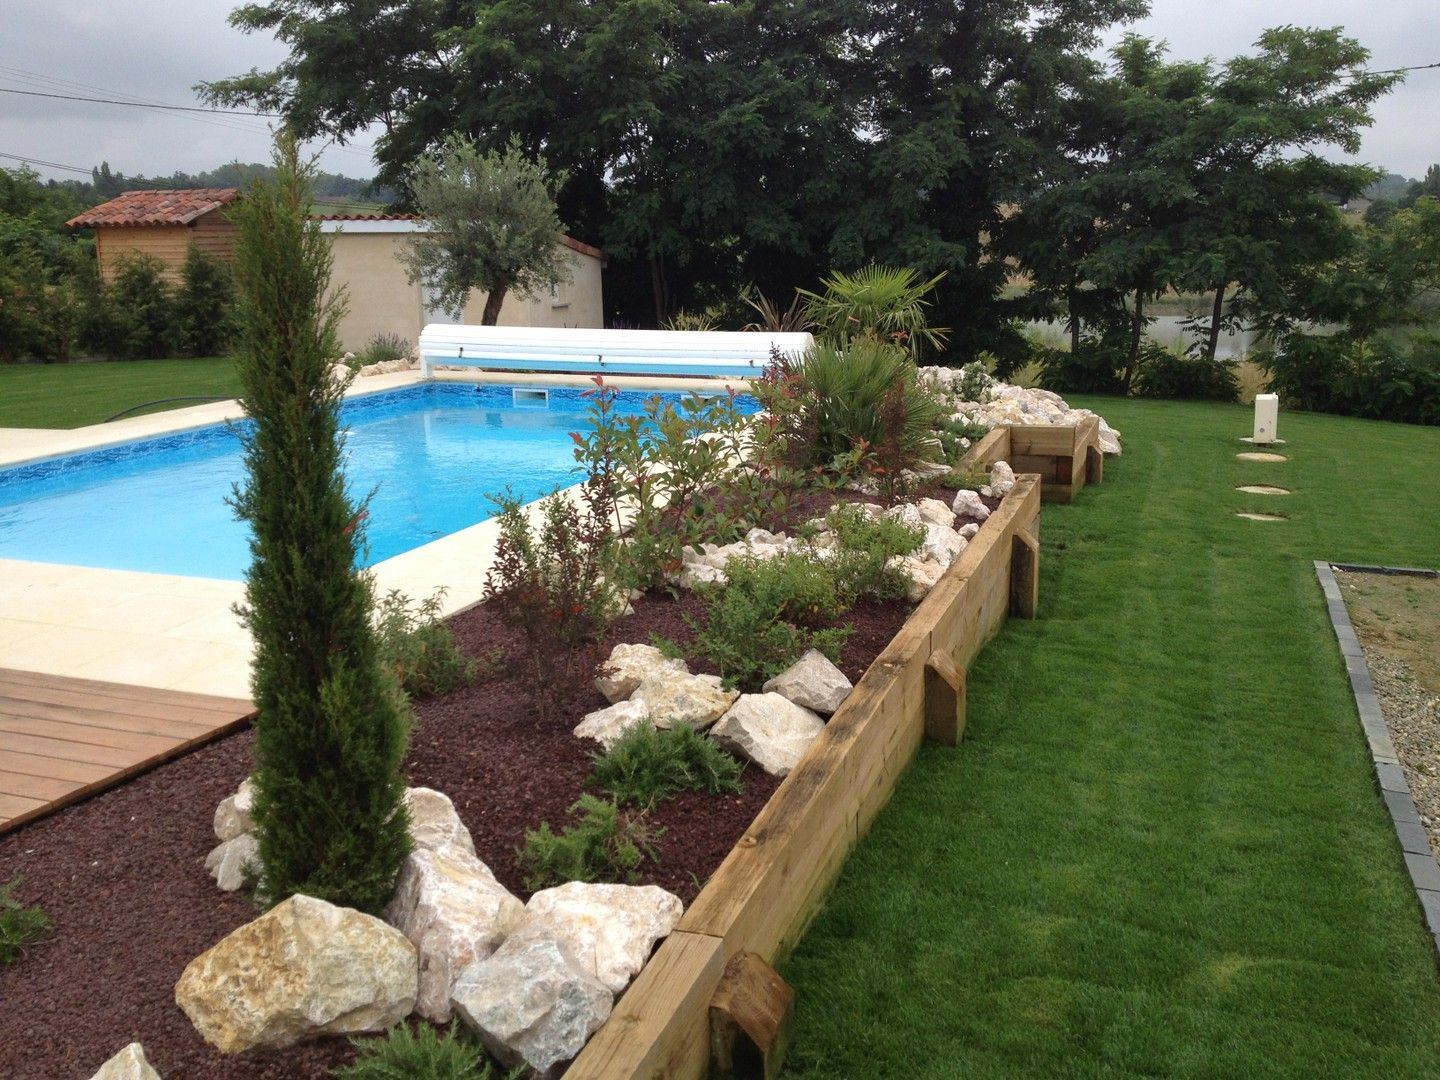 Am nagement tour de piscine pools pinterest swimming for Amenagement piscine